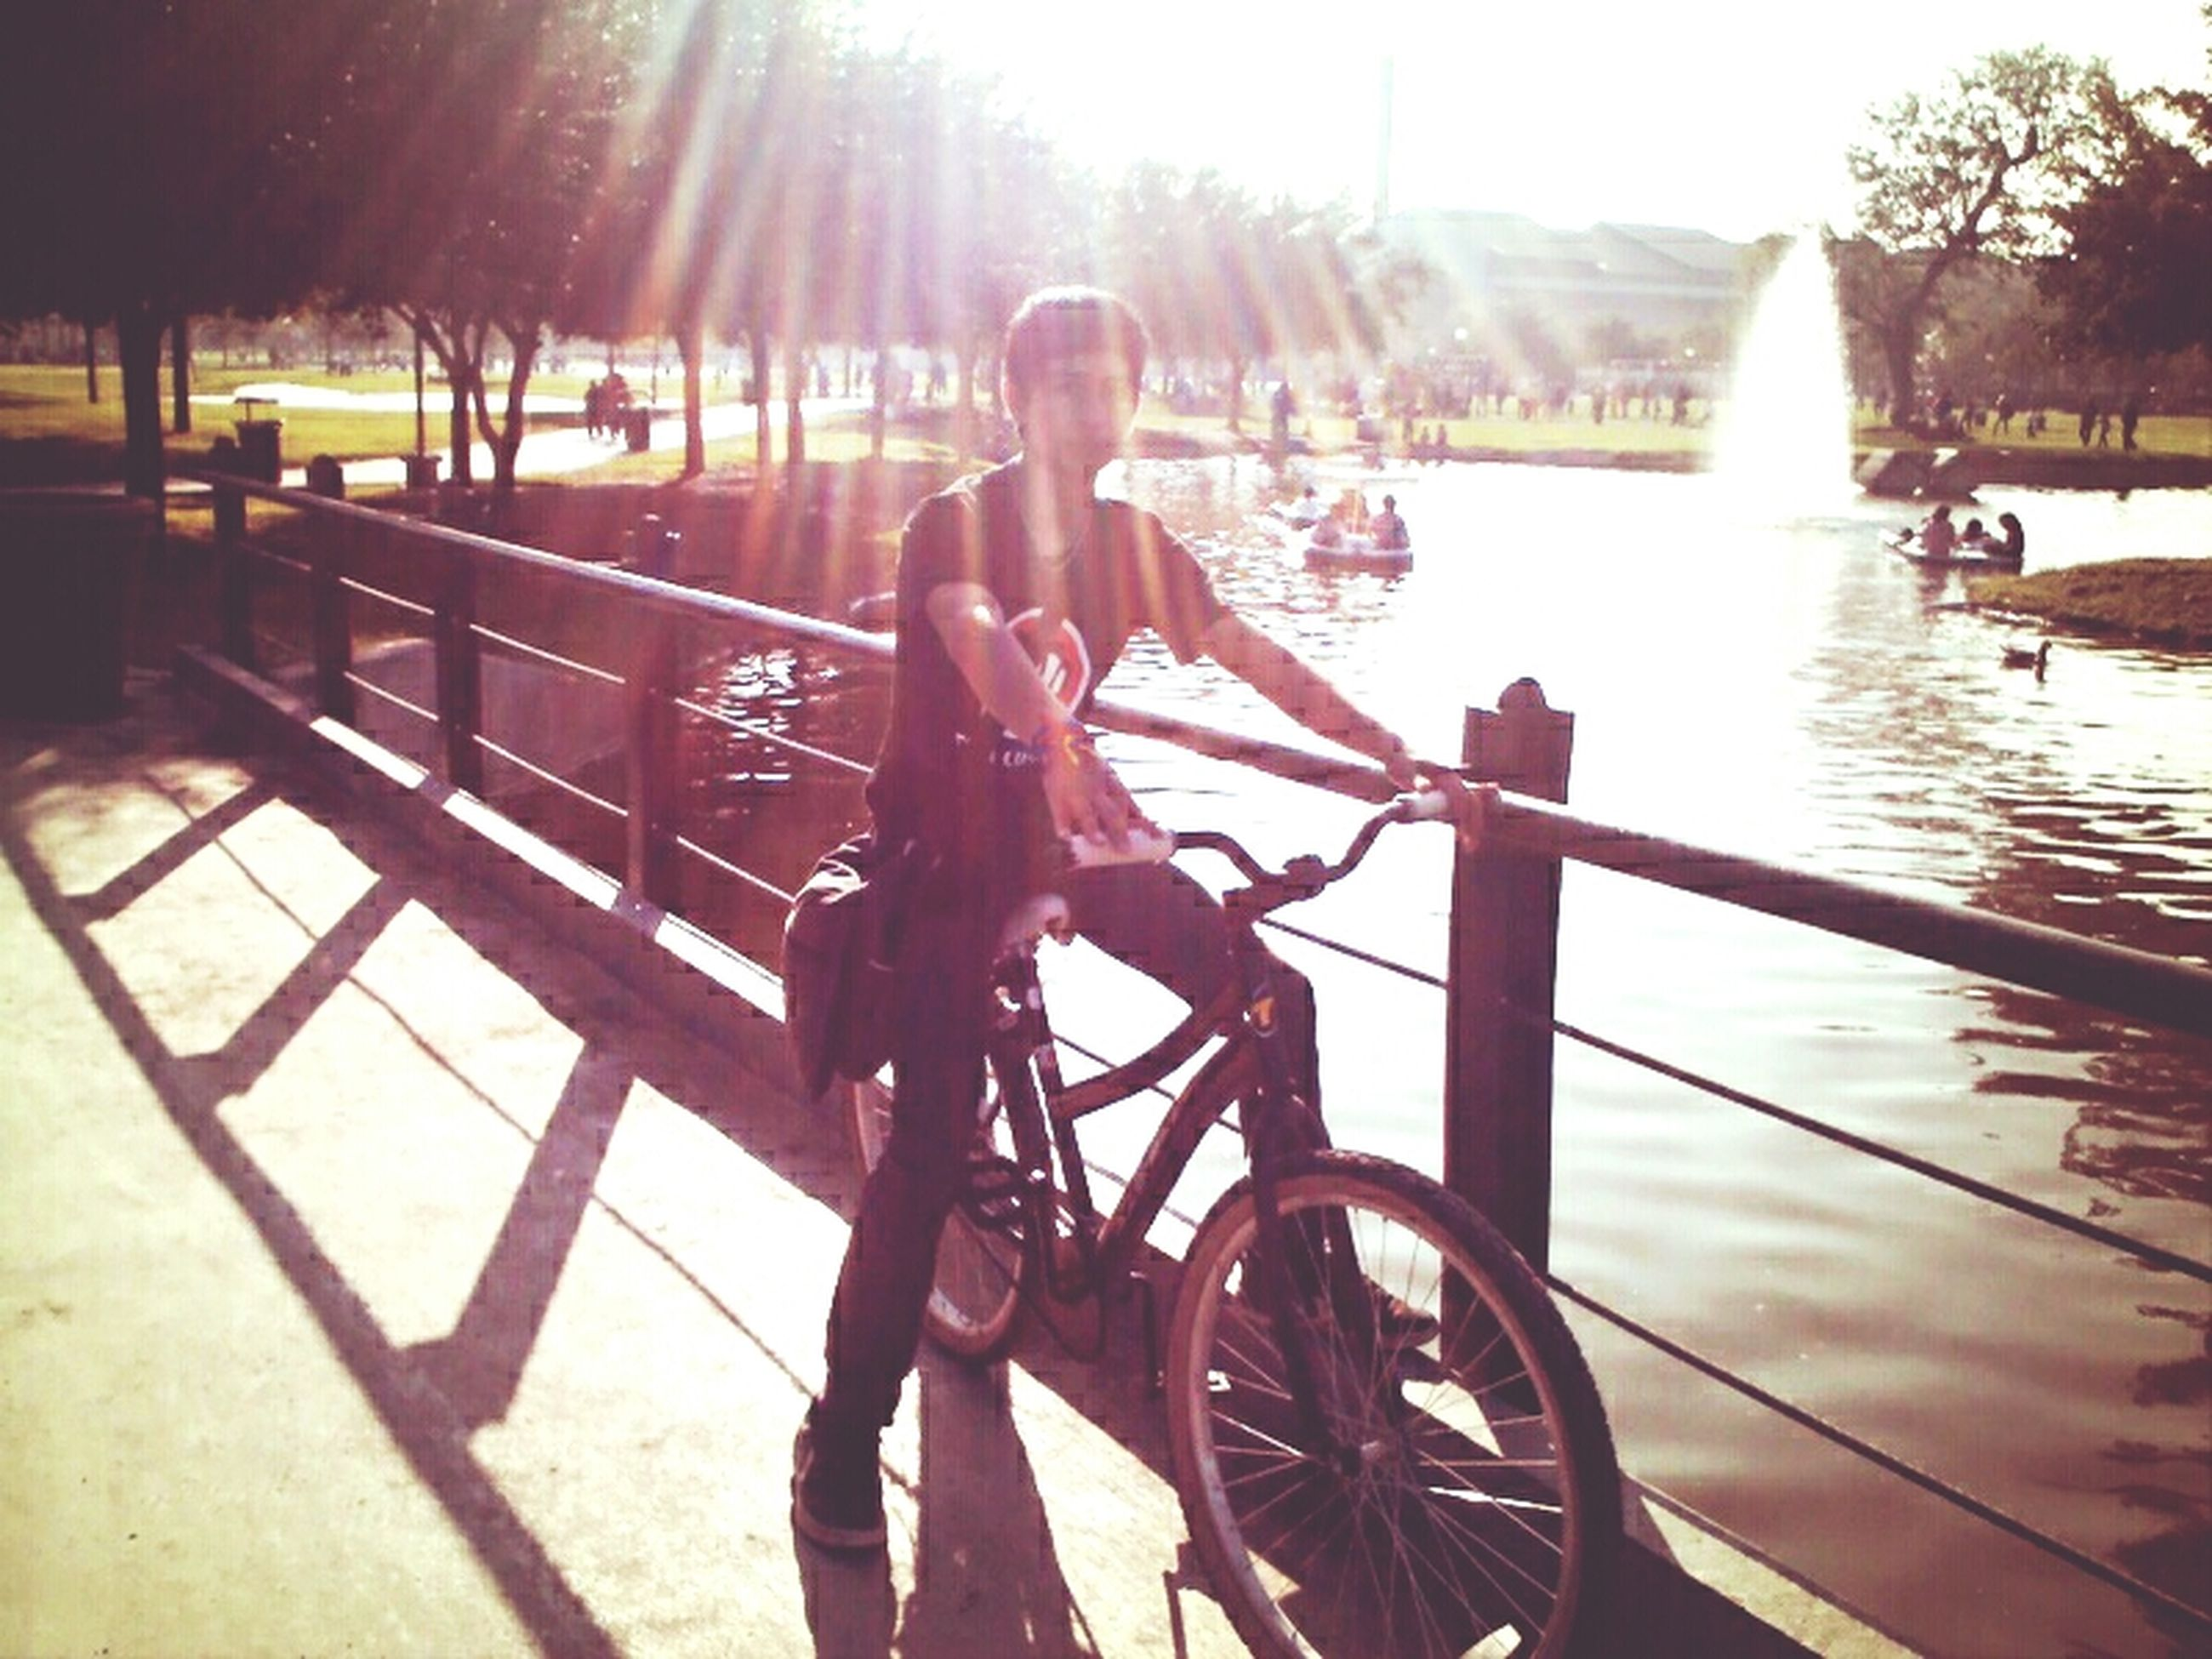 sunlight, sunbeam, sun, leisure activity, lens flare, bicycle, lifestyles, sunny, shadow, railing, water, transportation, outdoors, men, mode of transport, day, nature, wood - material